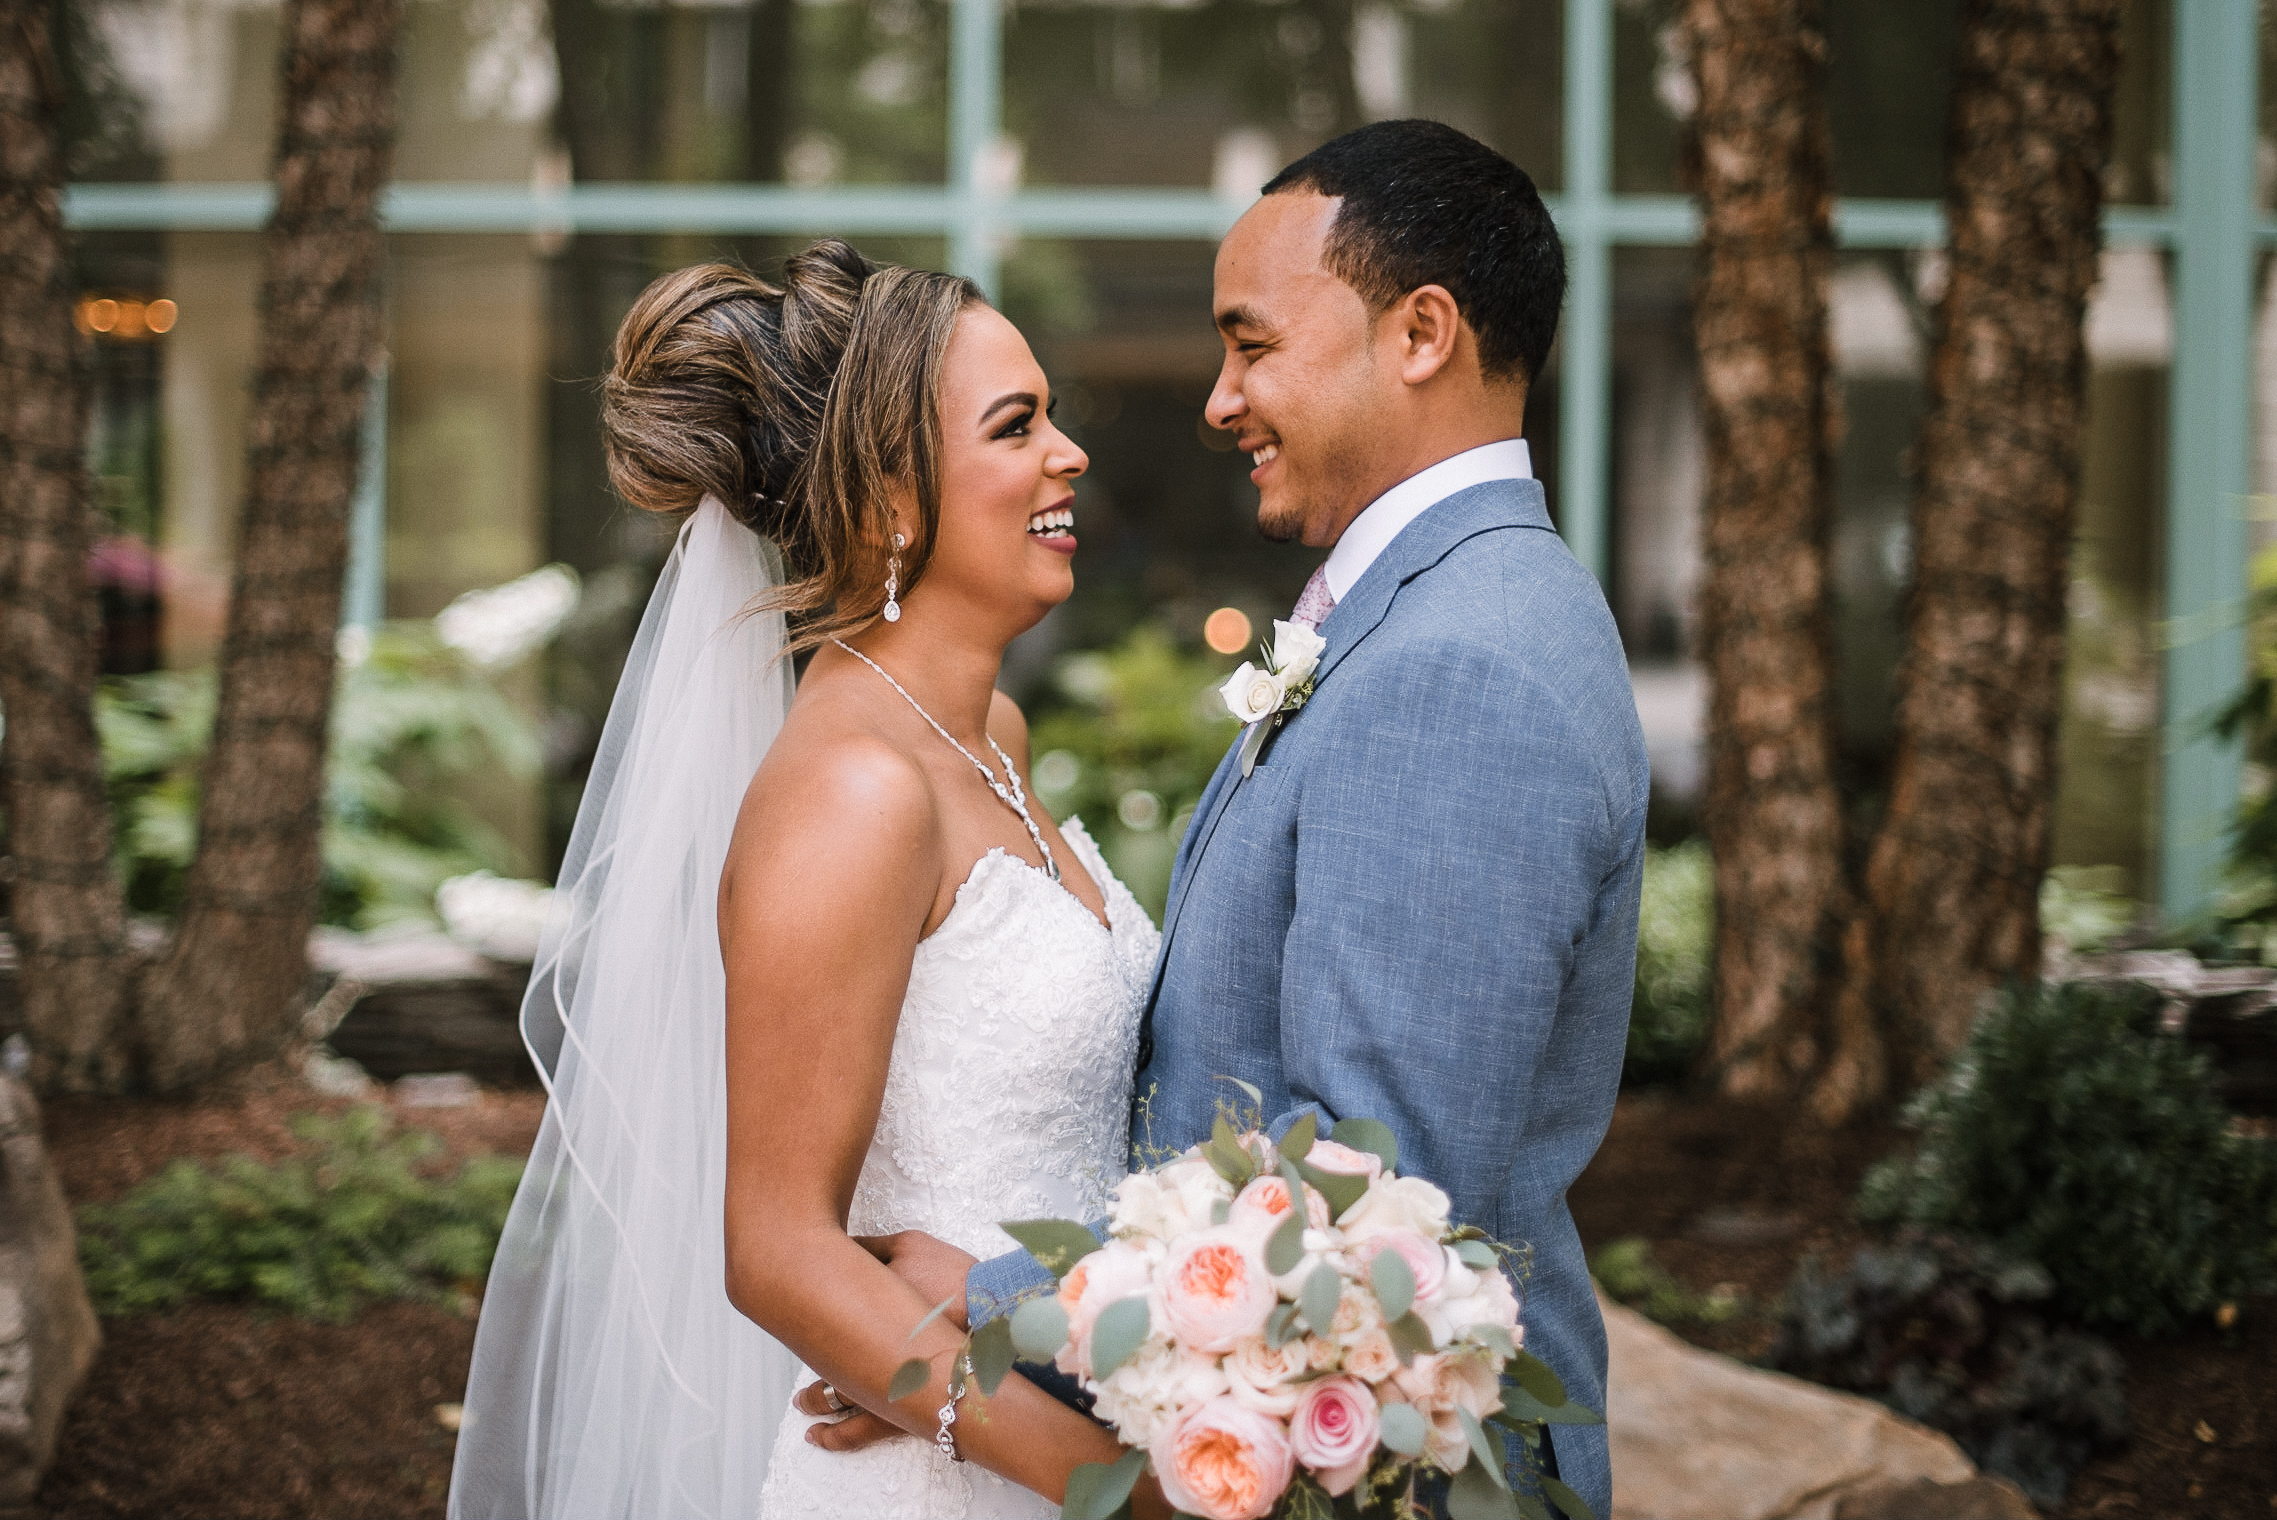 bride and groom smiling at each other at The Park Hyatt Hotel in Washington DC